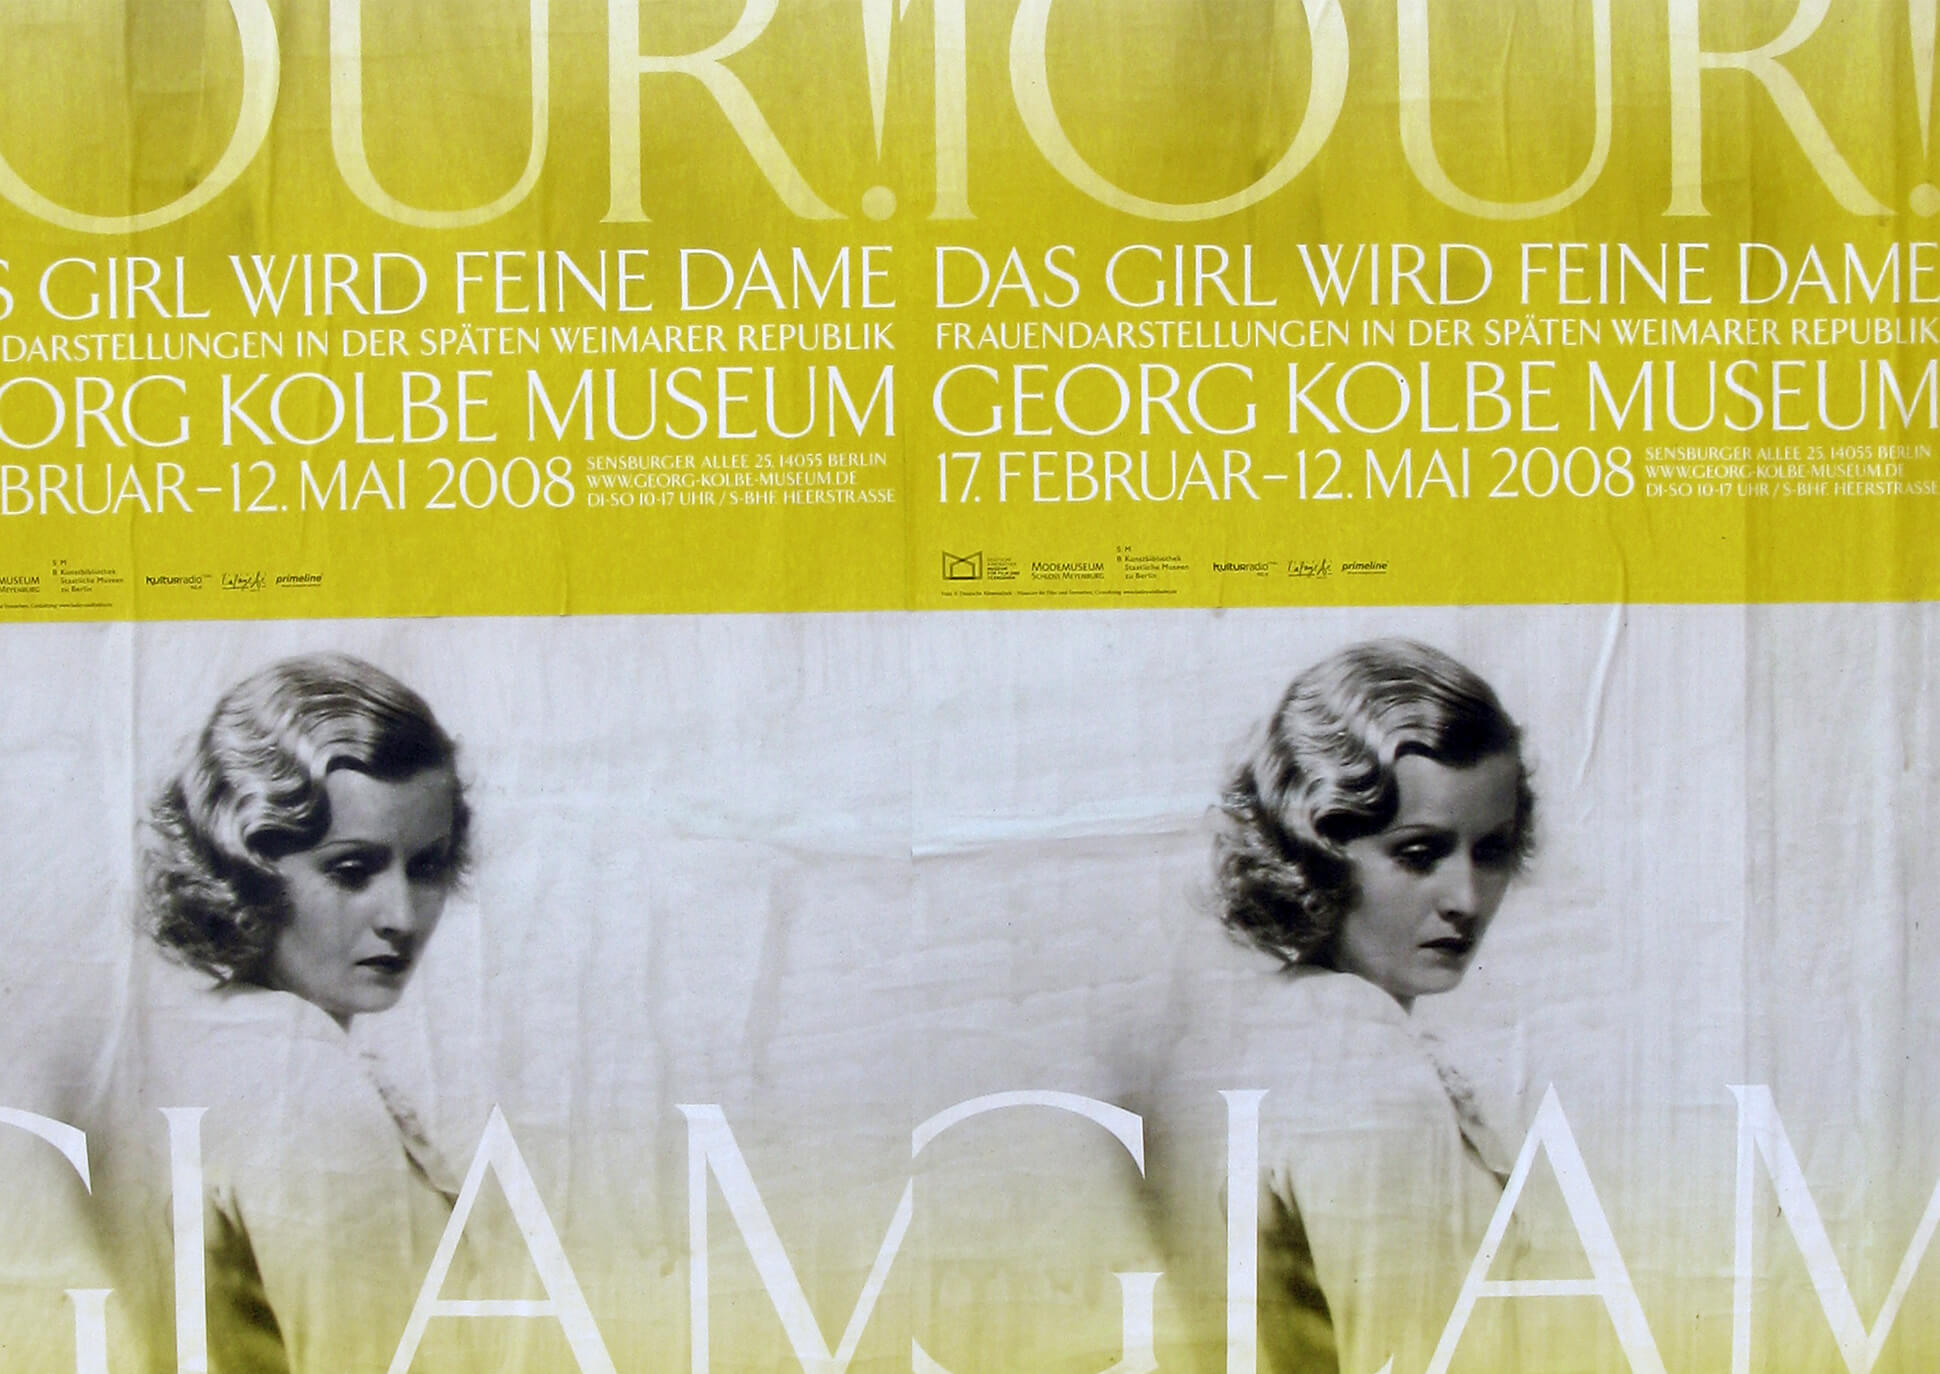 Georg_Kolbe_Museum_Glamour_Posters